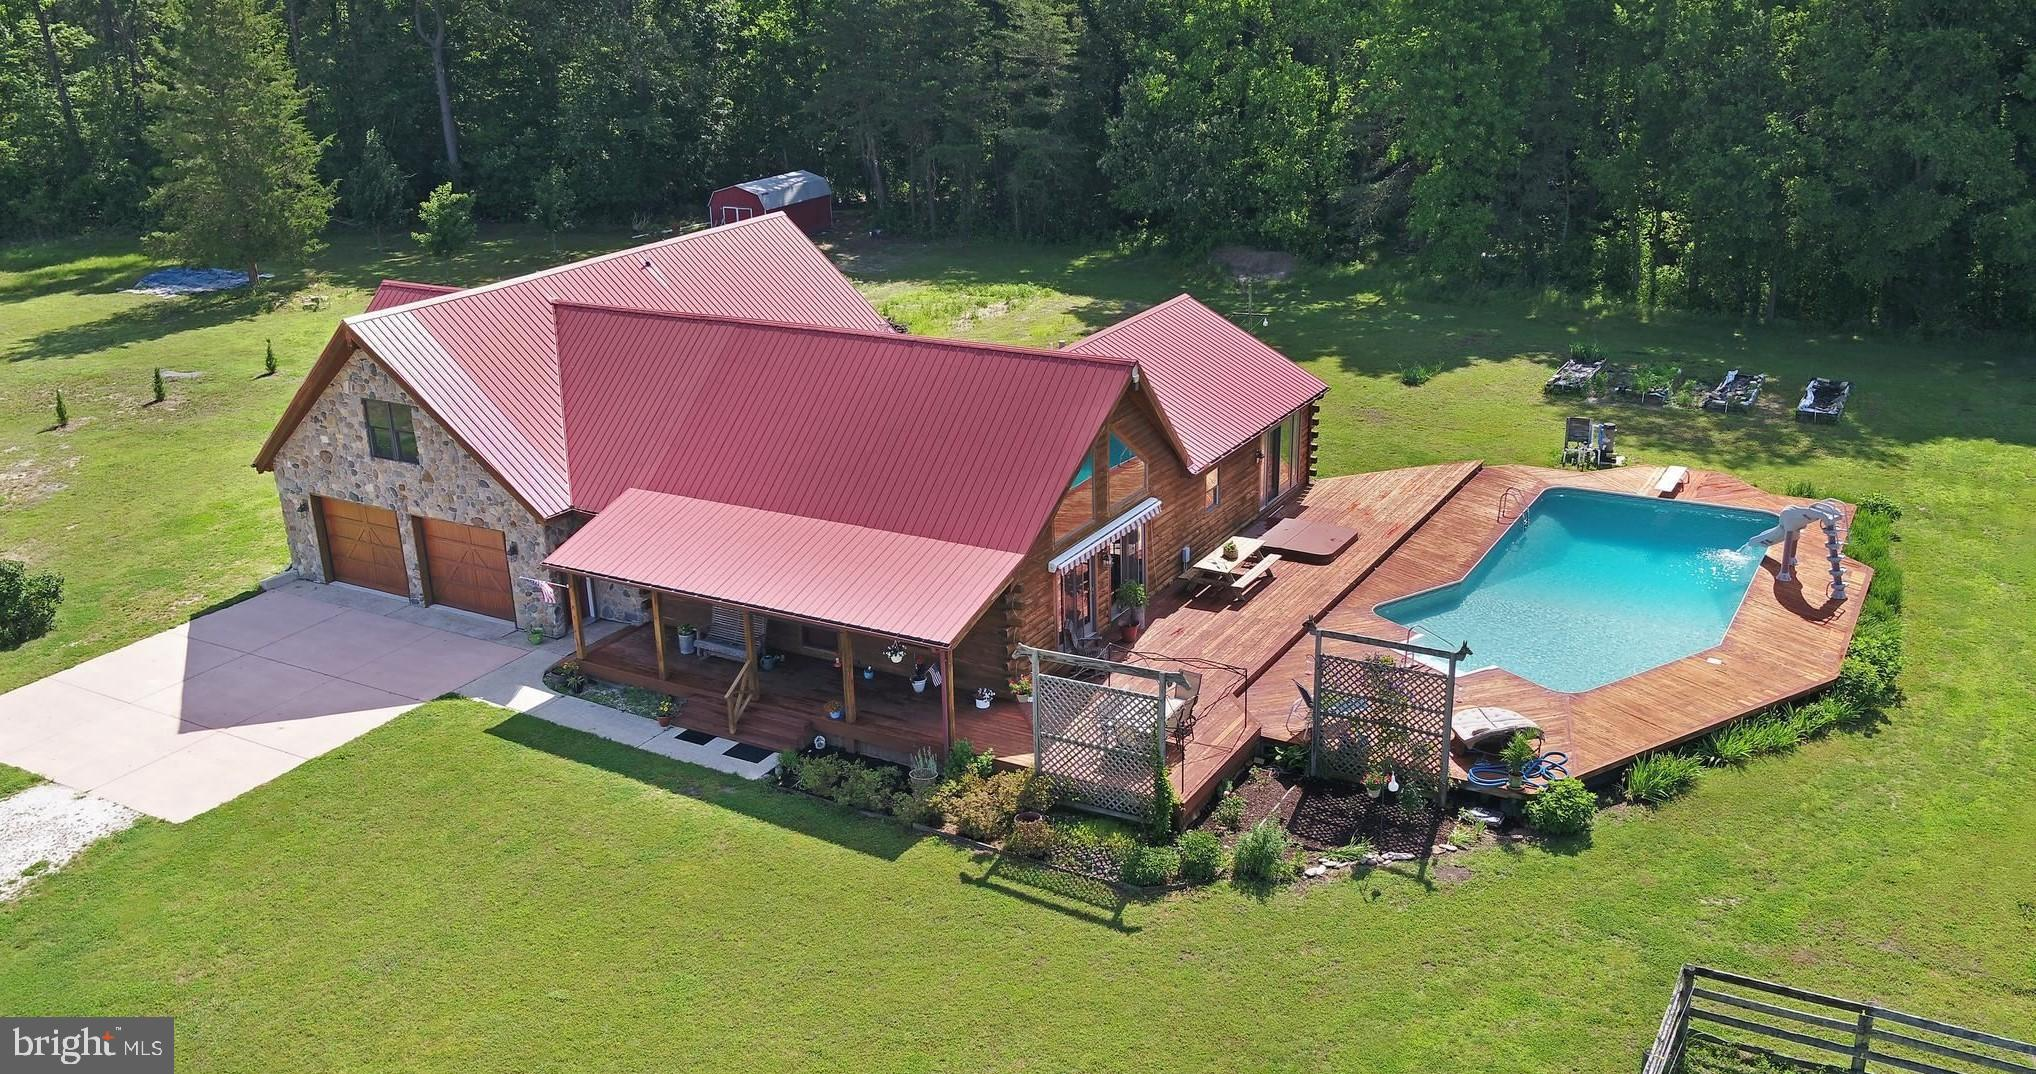 Horse lovers look no farther! This remarkable 27-acre farm boasts a custom log home surrounded by 3 fenced pastures, an impressive 40x60, 8 stall barn and an oversized equipment storage barn. Let your imagination soar in the 6-bay detached garage with electric and concrete floors. The moment you enter onto the property you will want to call it home. Pulling into to the 2-car oversized garage is the beginning of a beautiful experience. You will immediately be in awe of the rustic charm of this well-lit home with cathedral ceilings and stunning windows to watch wild turkeys and deer. A gourmet kitchen with gas stove, and granite counter tops will quickly ignite the chef in you.  The Great Room glows with a floor to ceiling fireplace and overlooking loft. Additionally, from the great room you can enjoy access to a grandiose outdoor entertaining space with inground pool and slide! And then in the colder months you can nestle up next to the wood stove adjacent to the kitchen with a good book or a good friend. The master suite and utility room, equipped with washer and dryer are suitably located on the main floor, along with a large entertaining room and/or additional living space. Bonus: the area above the garage is partially finished, including electric, plumbing, HVAC, and finishing materials--offering nearly 1000 more sf of living space. If that is not enough, this property also has access to Redden Forest for your leisure days on the trails.  Conveniently located near the beach and easy commute to the surrounding major cities makes this property a must have.